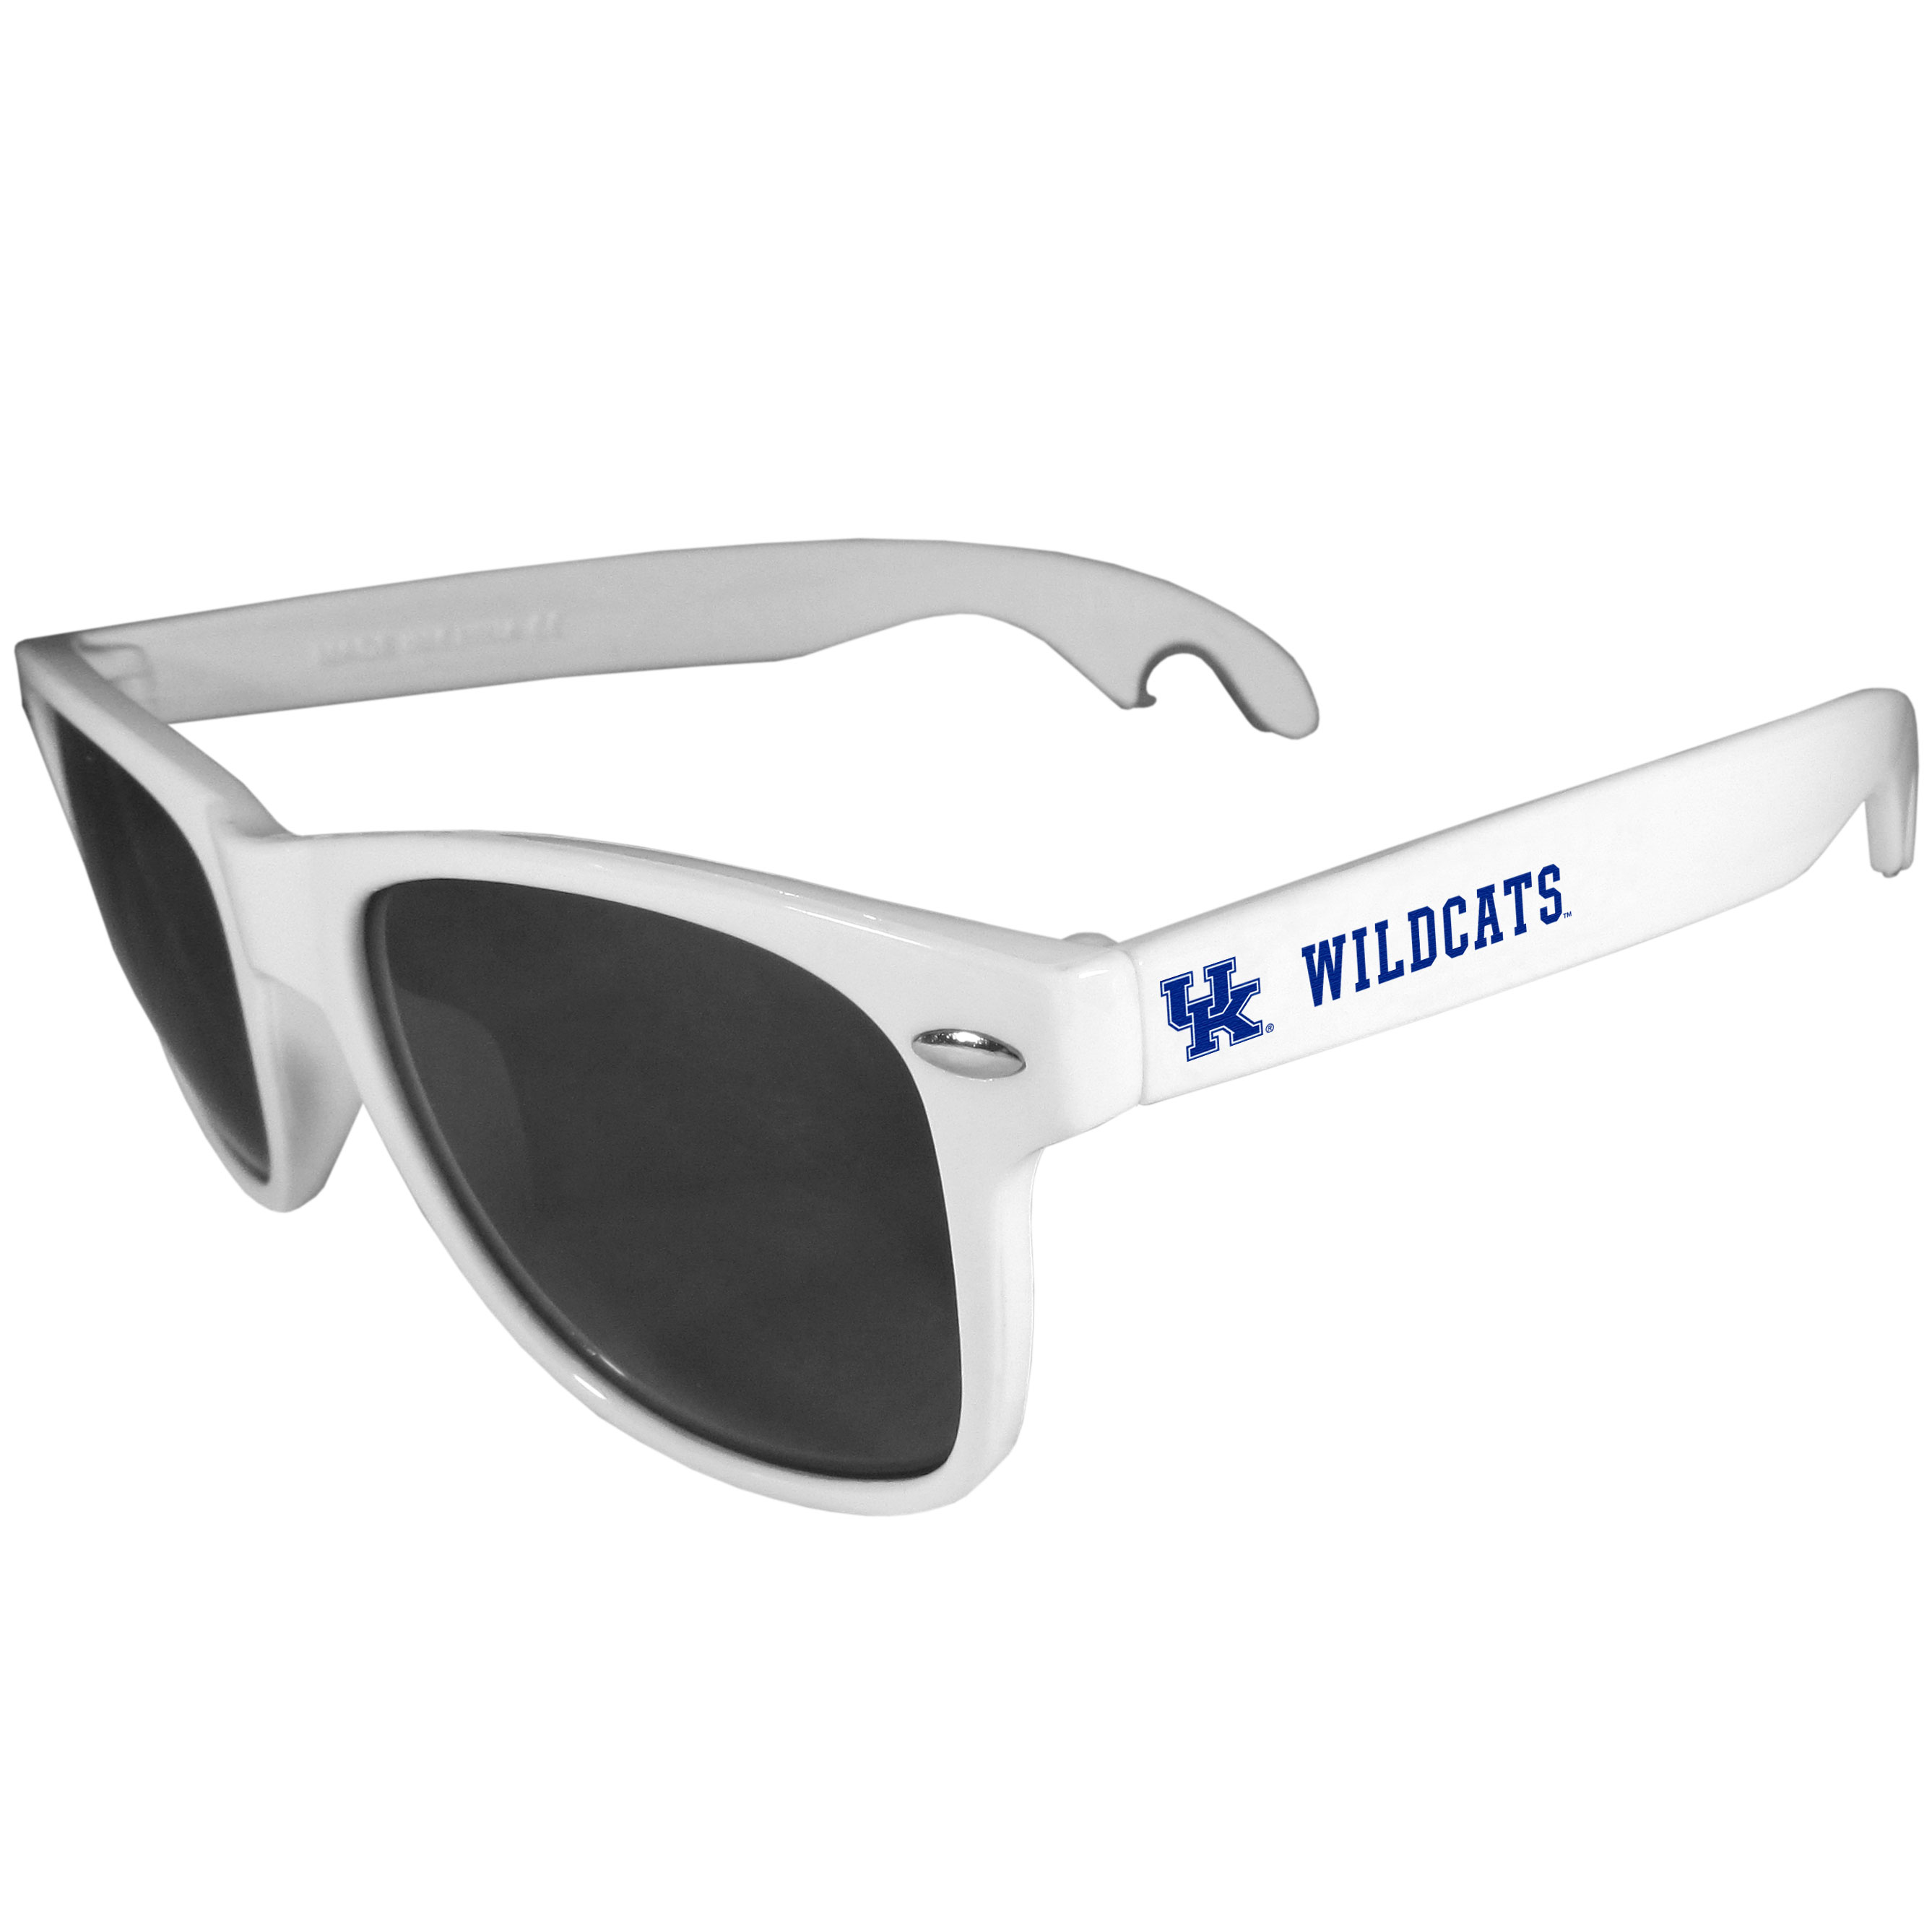 Kentucky Wildcats Beachfarer Bottle Opener Sunglasses, White - Seriously, these sunglasses open bottles! Keep the party going with these amazing Kentucky Wildcats bottle opener sunglasses. The stylish retro frames feature team designs on the arms and functional bottle openers on the end of the arms. Whether you are at the beach or having a backyard BBQ on game day, these shades will keep your eyes protected with 100% UVA/UVB protection and keep you hydrated with the handy bottle opener arms.